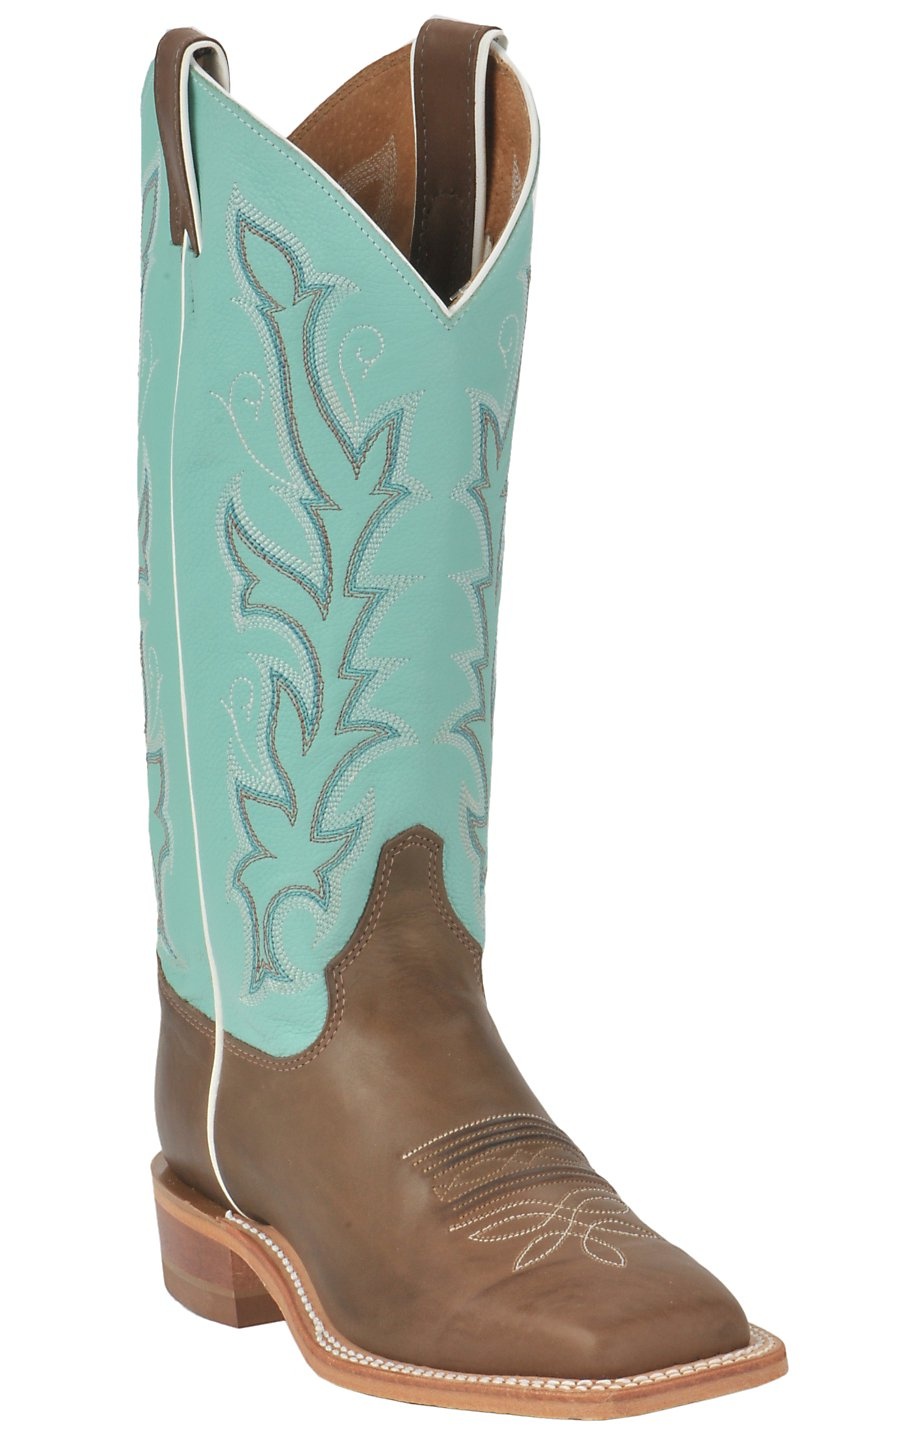 Luxury Boots Gt Mens Cowboy Boots Gt Justin Bent Rail Men39s Wide Square To